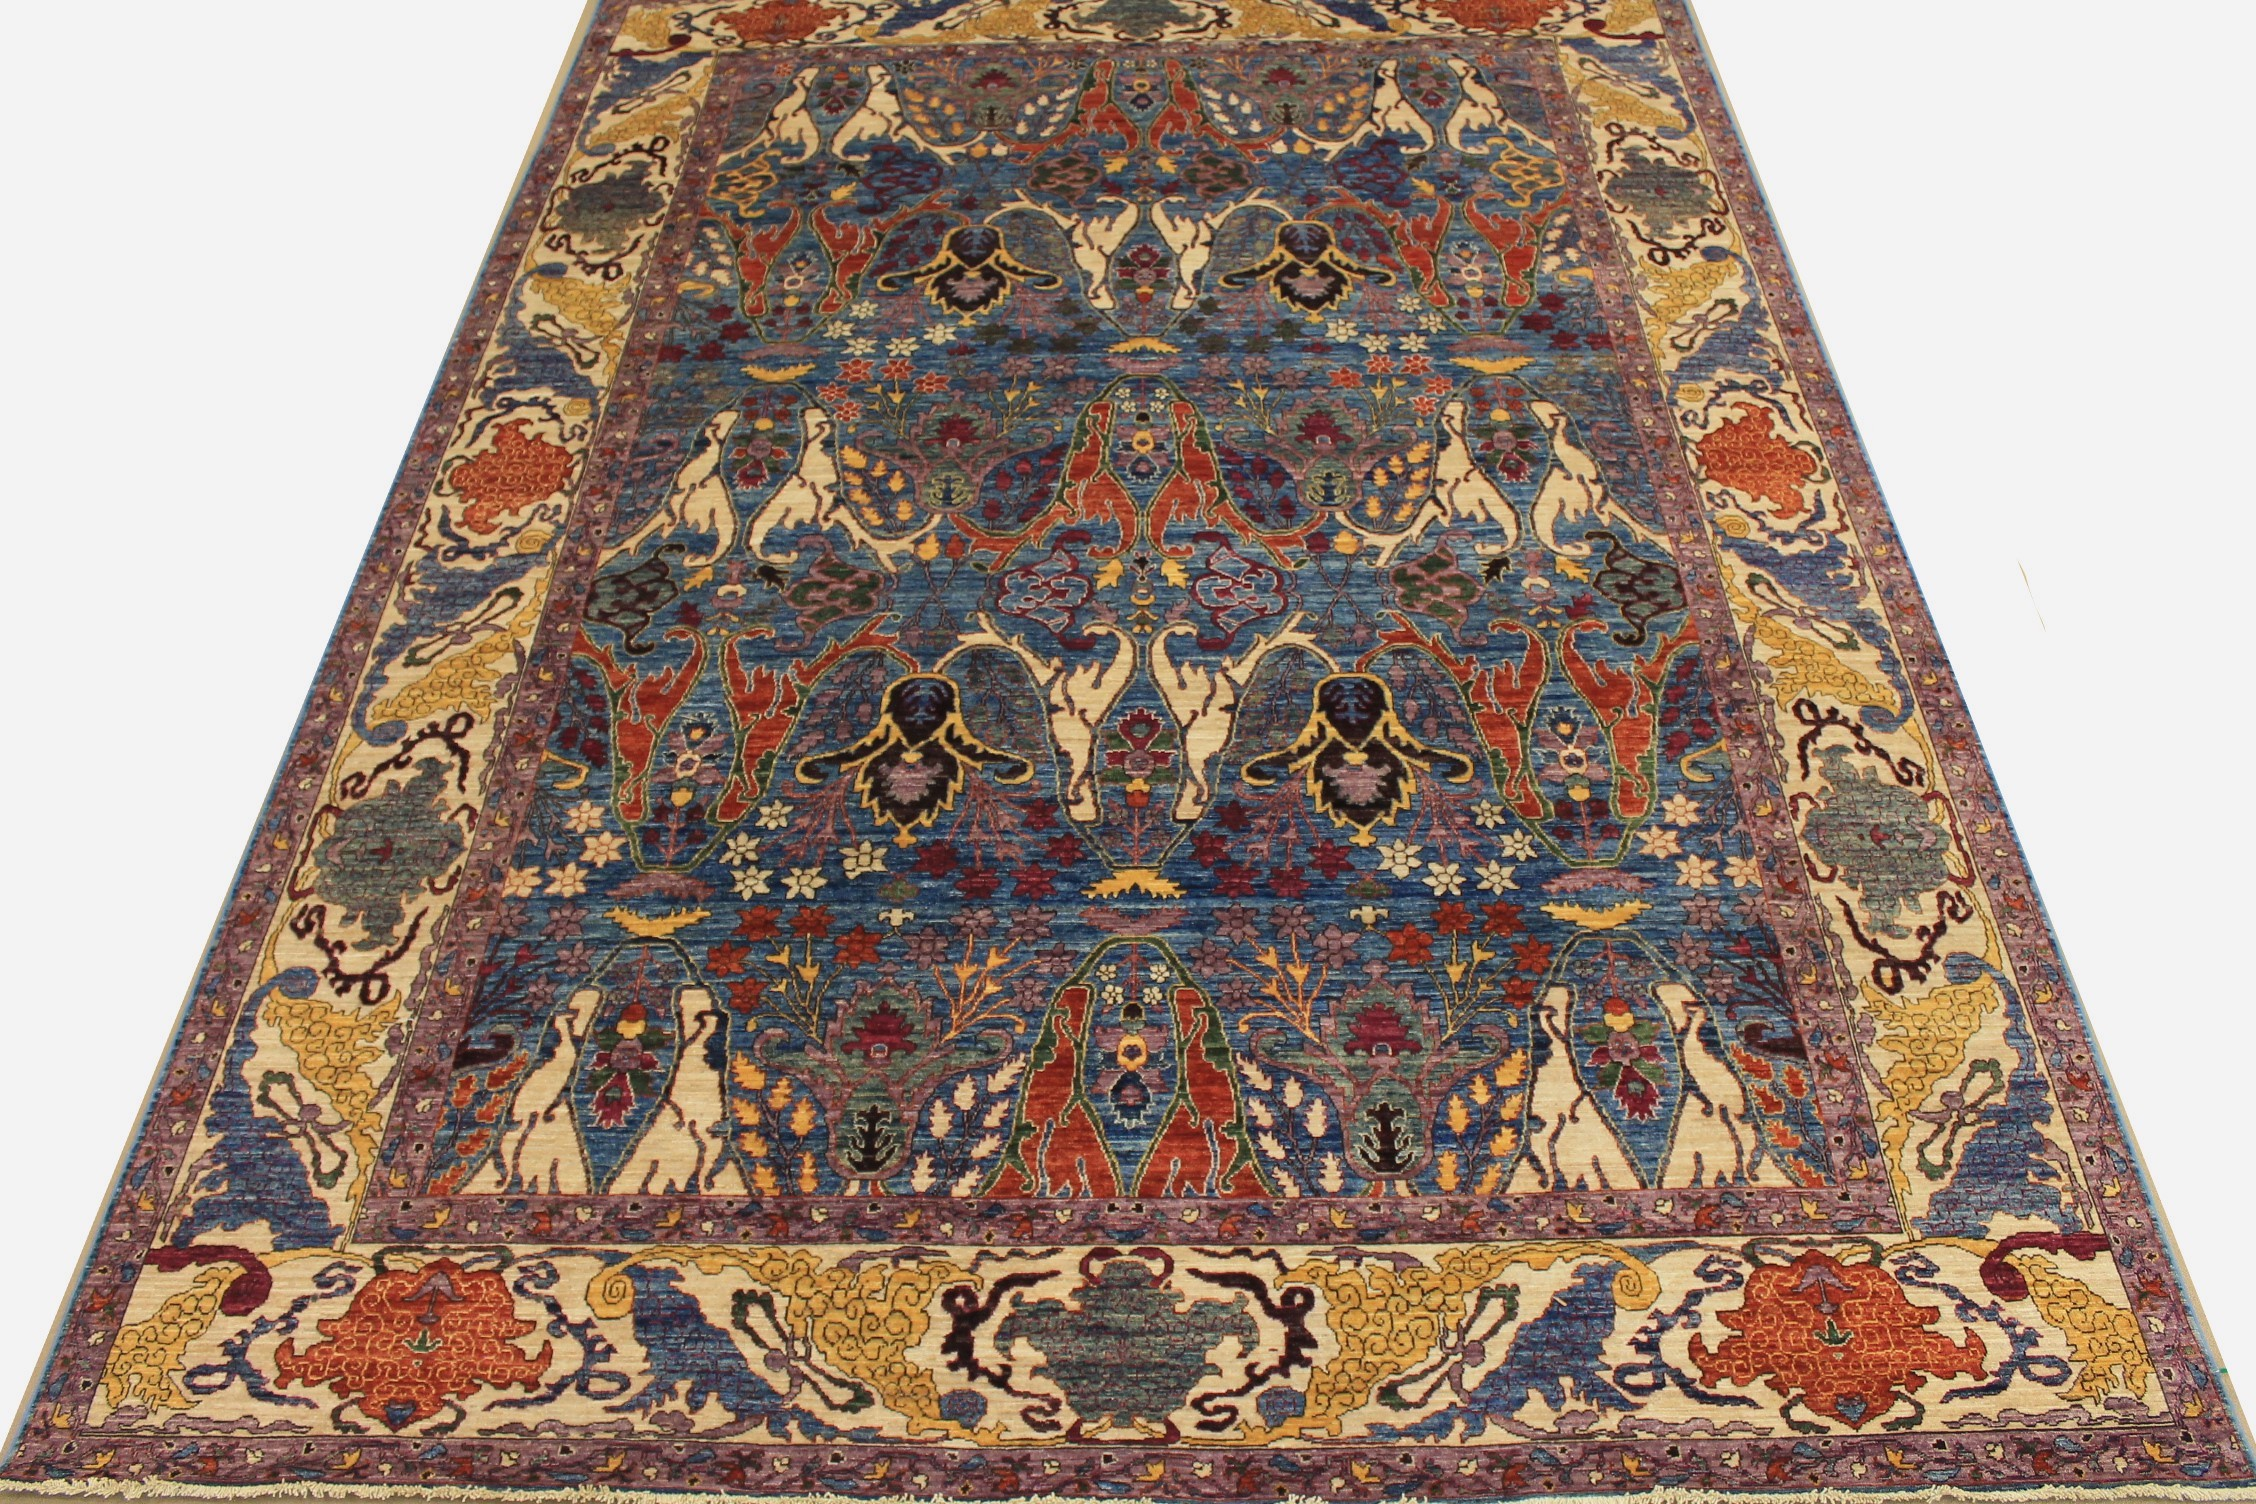 10x14 Antique Revival Hand Knotted Wool Area Rug - MR024991